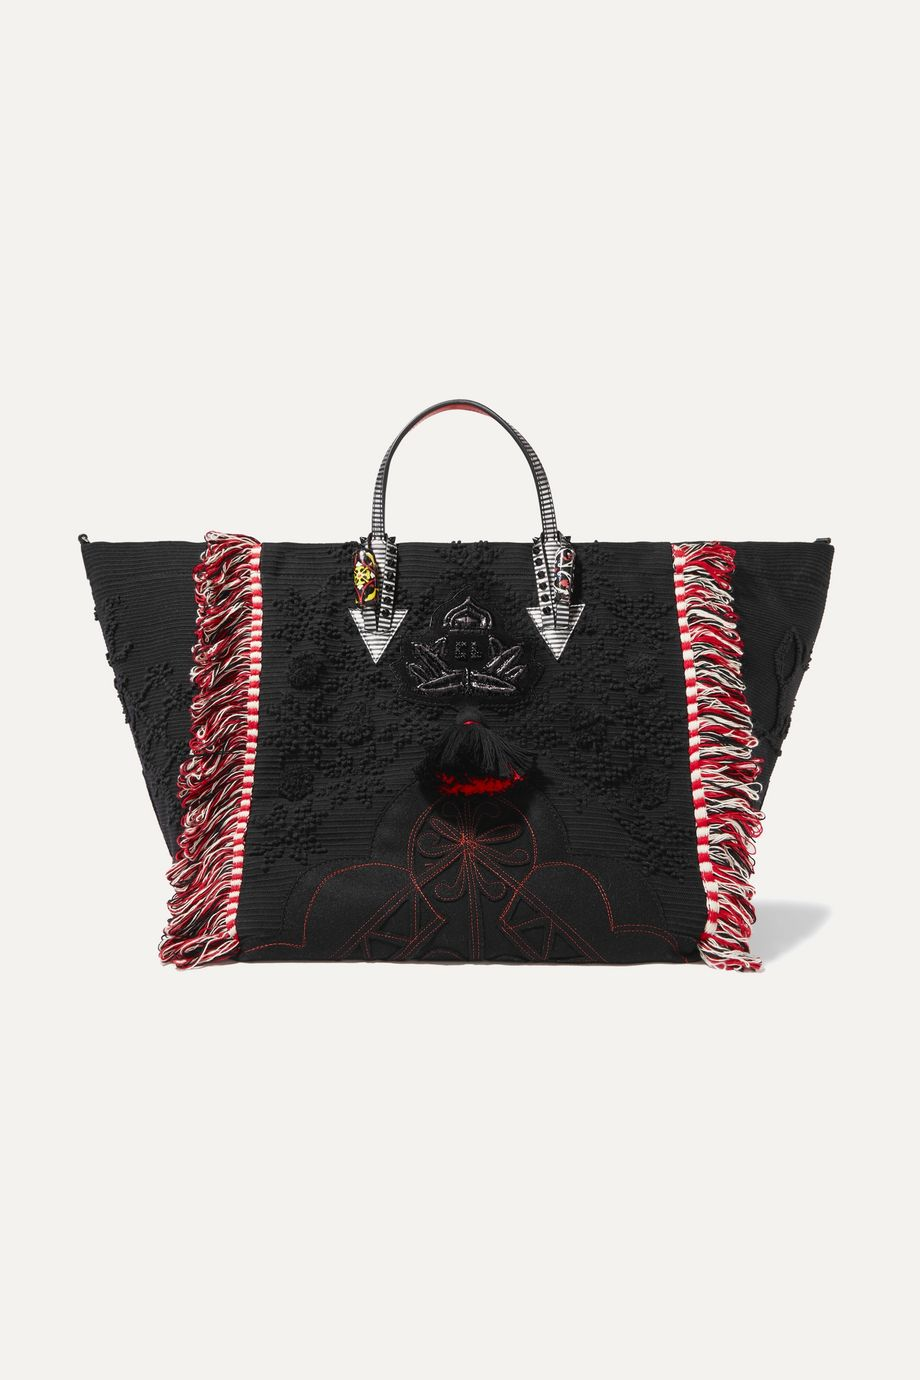 Christian Louboutin Portugaba fringed leather-trimmed canvas tote